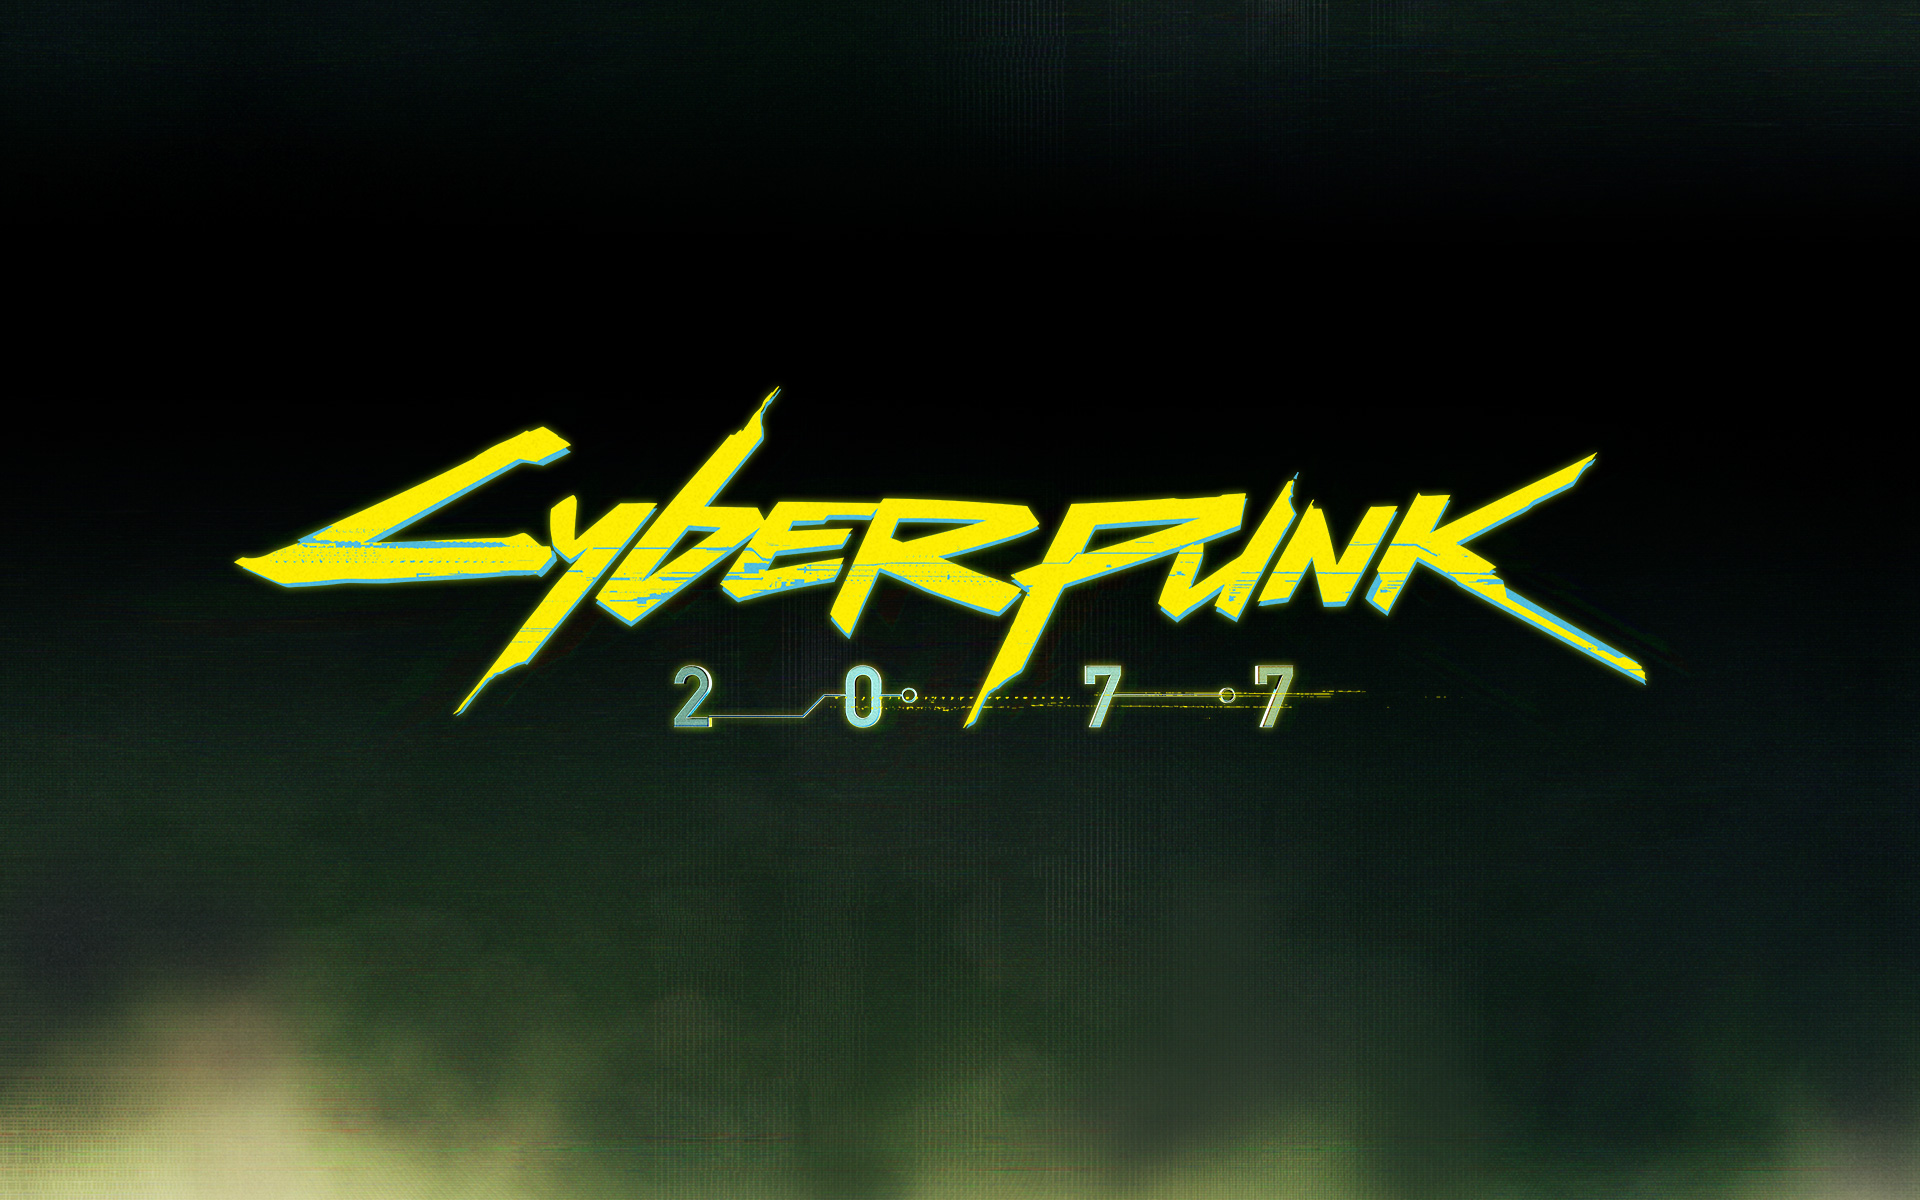 Cyberpunk 2077 – Development team bigger than The Witcher 3's